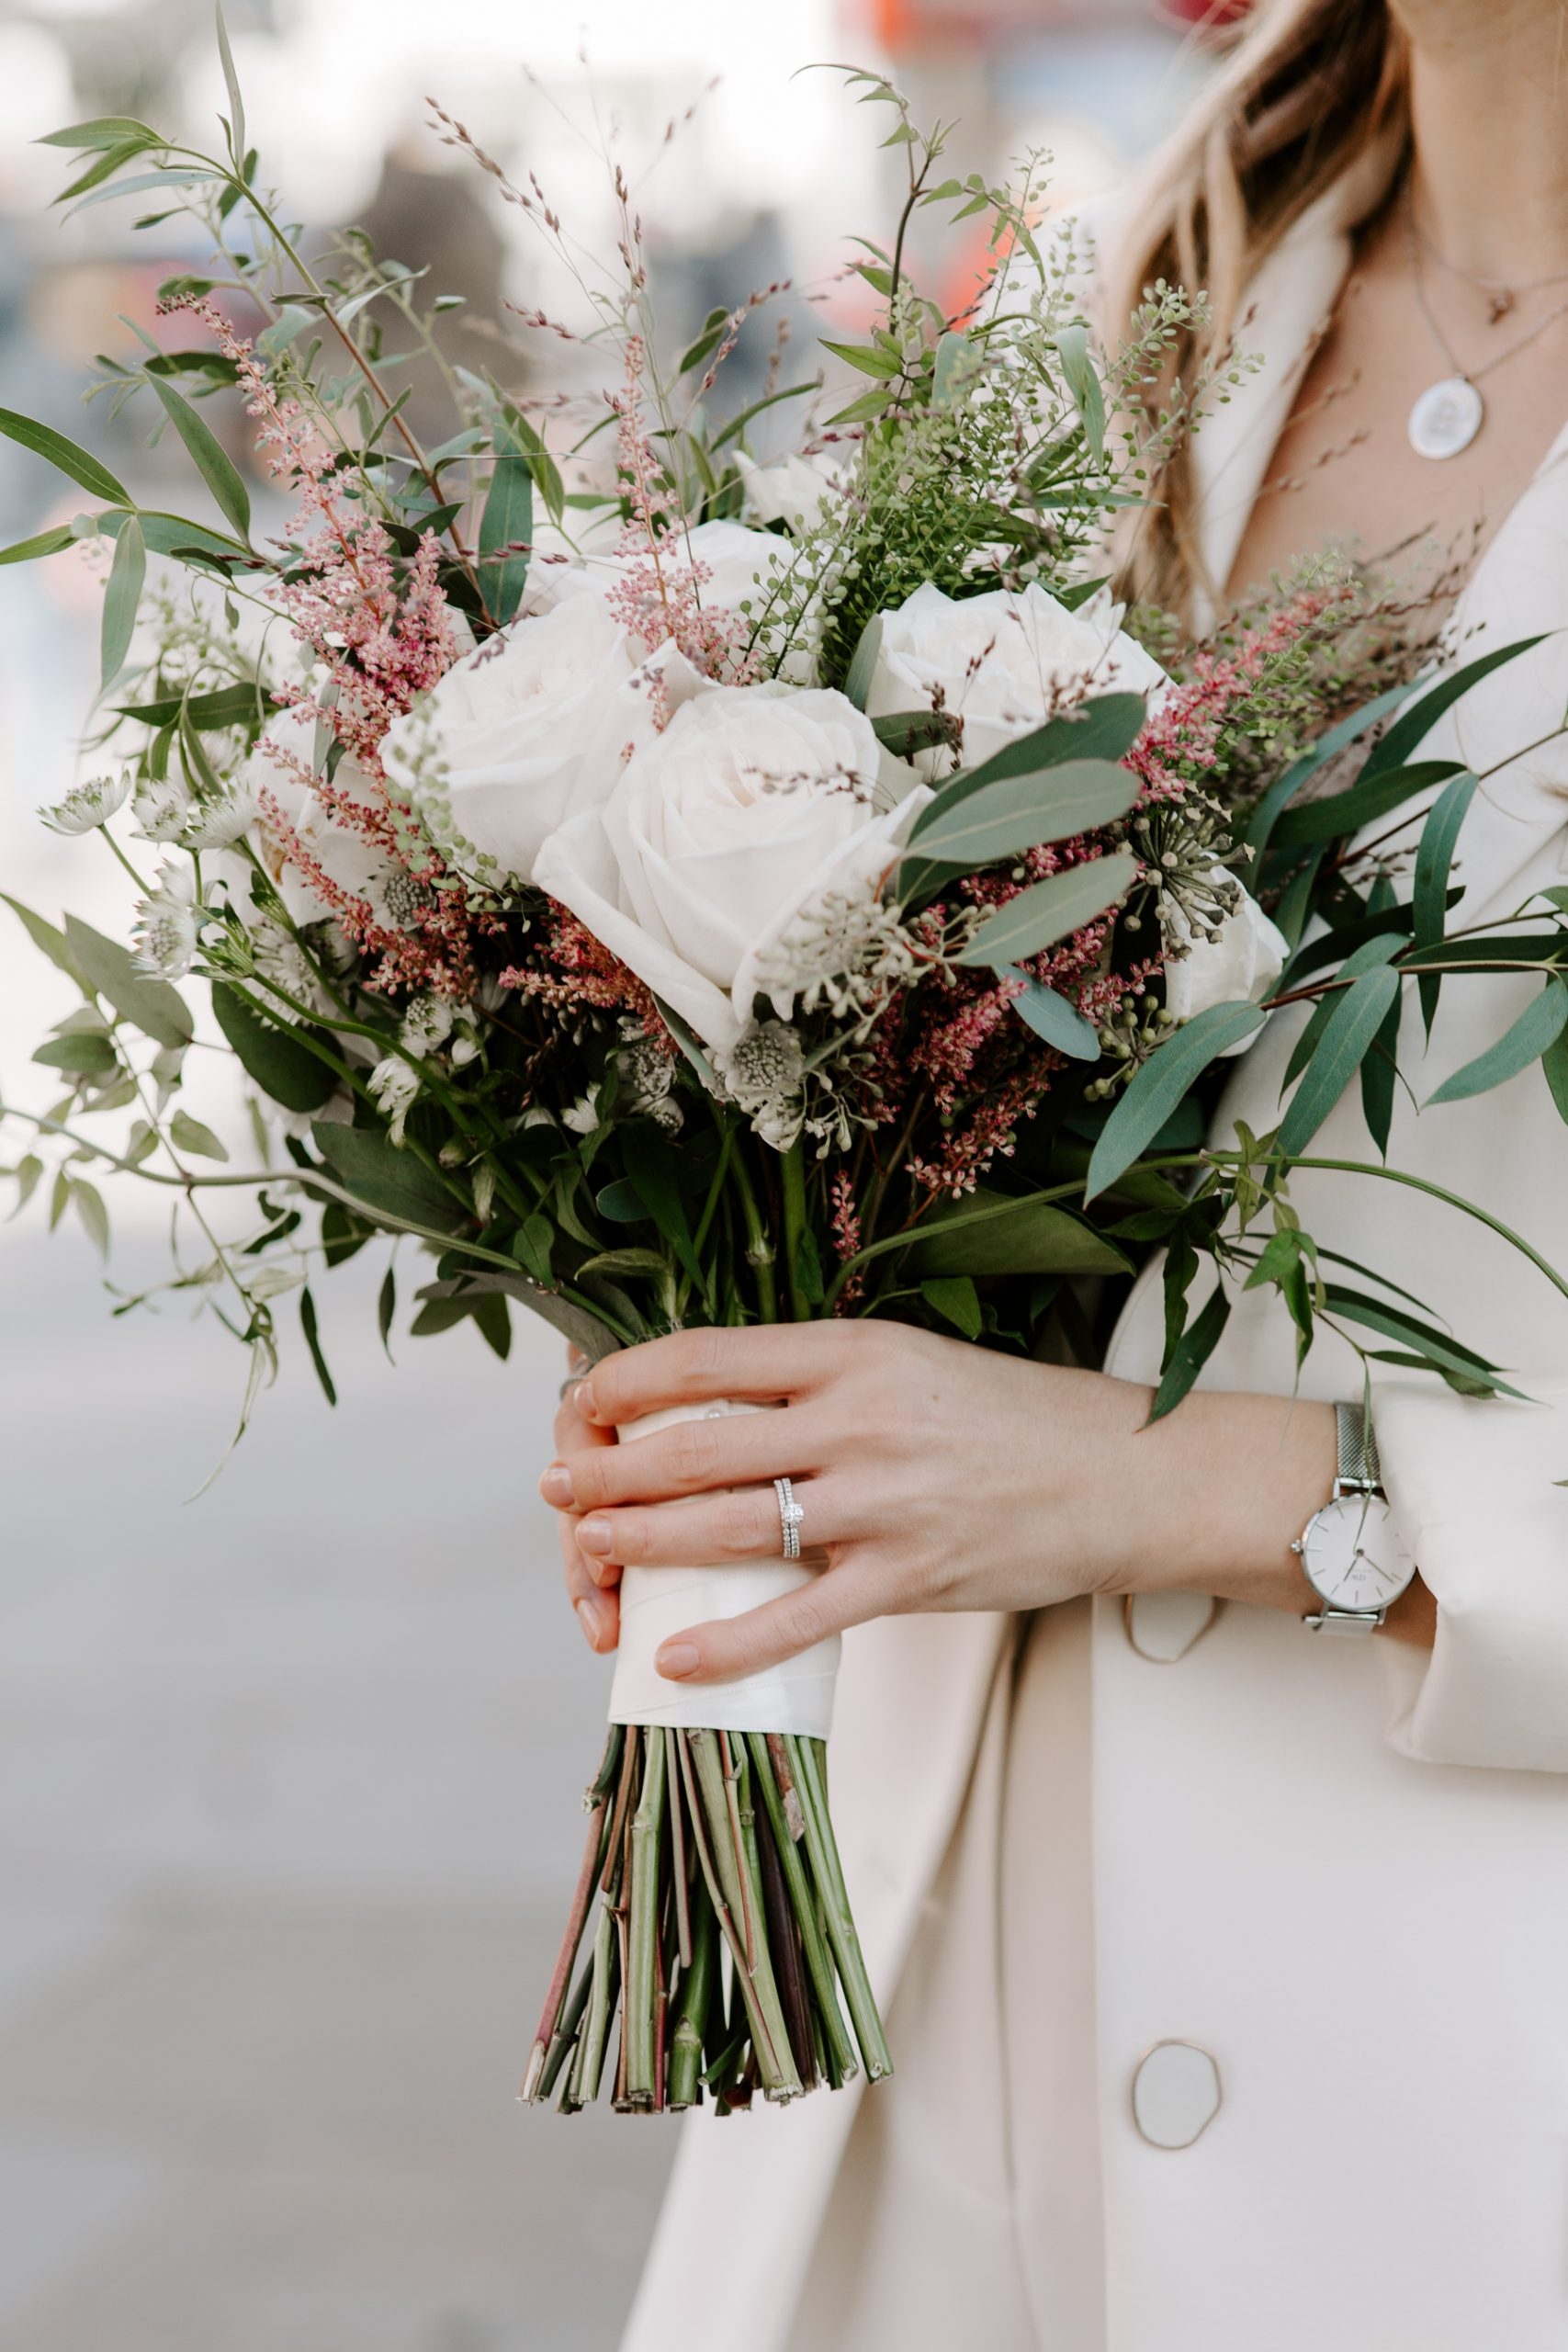 A bride holding a modern white and eucalyptus wedding bouquet